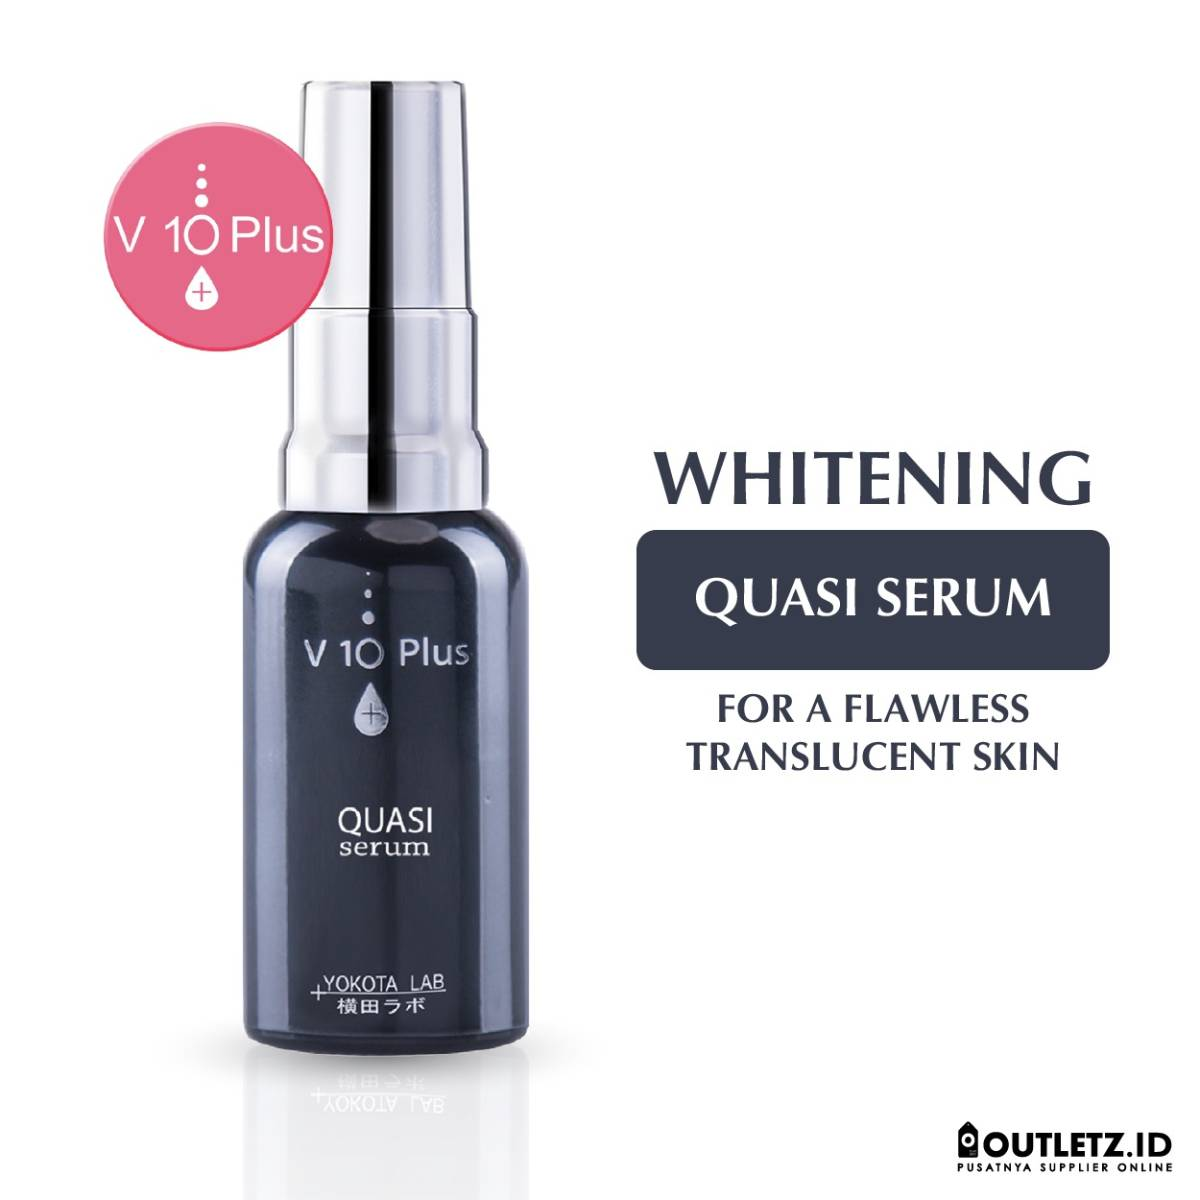 V10 Plus Kuasi Serum